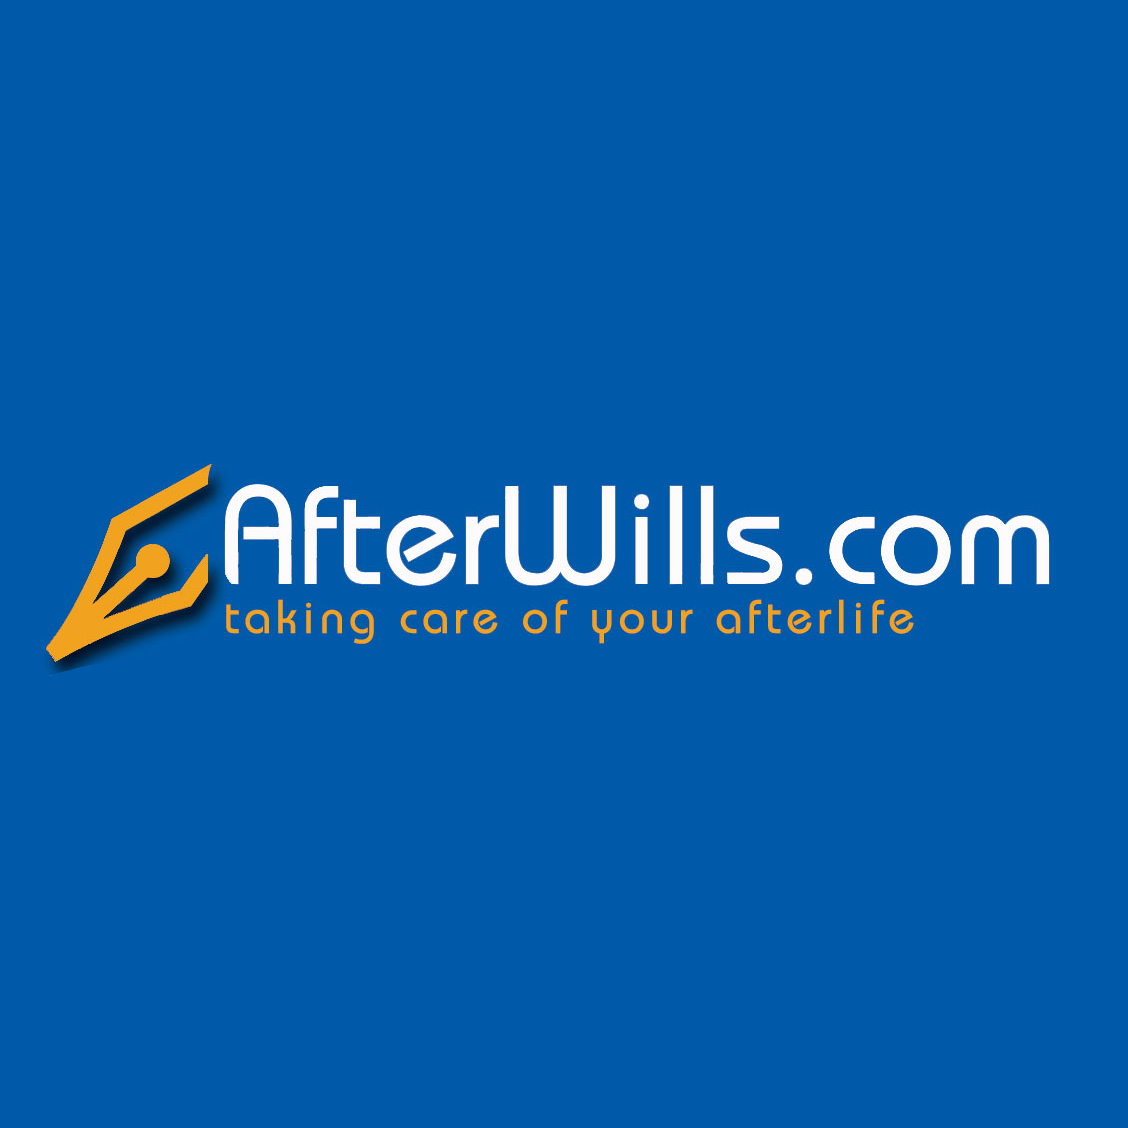 AfterWills franchise